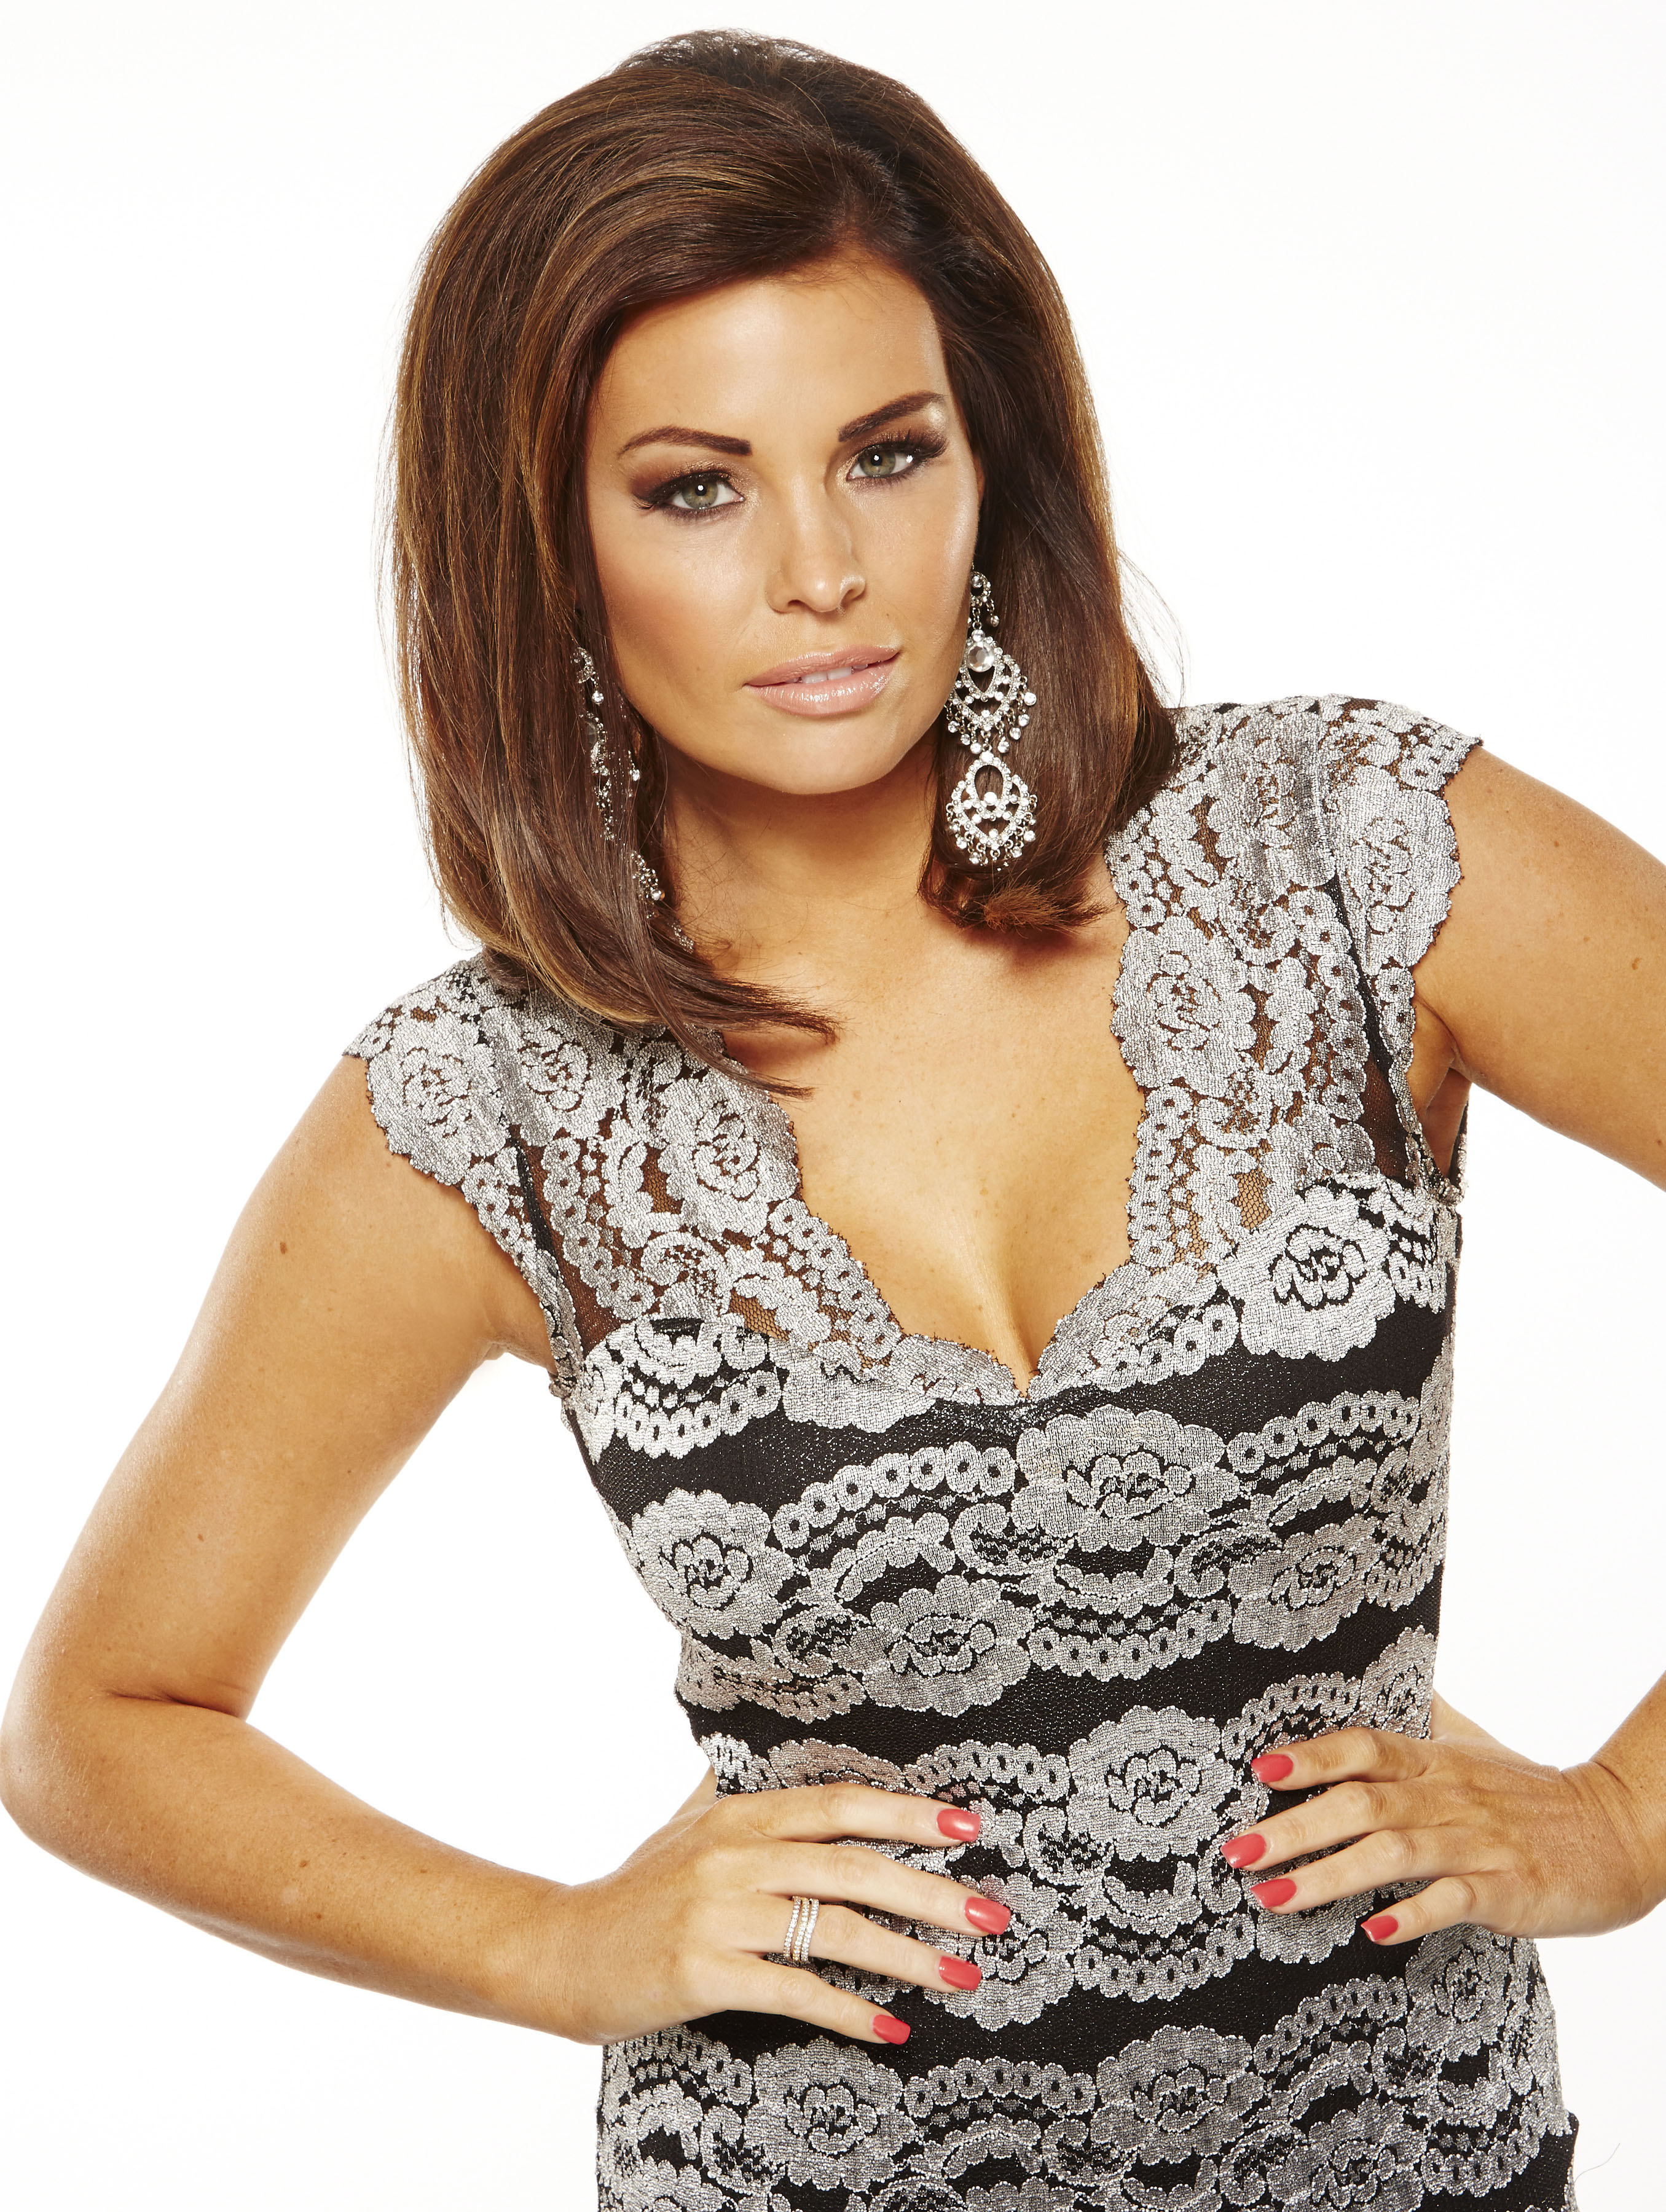 TOWIE's Jess Wright: I'm so glad Ricky Rayment and I have avoided the Essex love curse